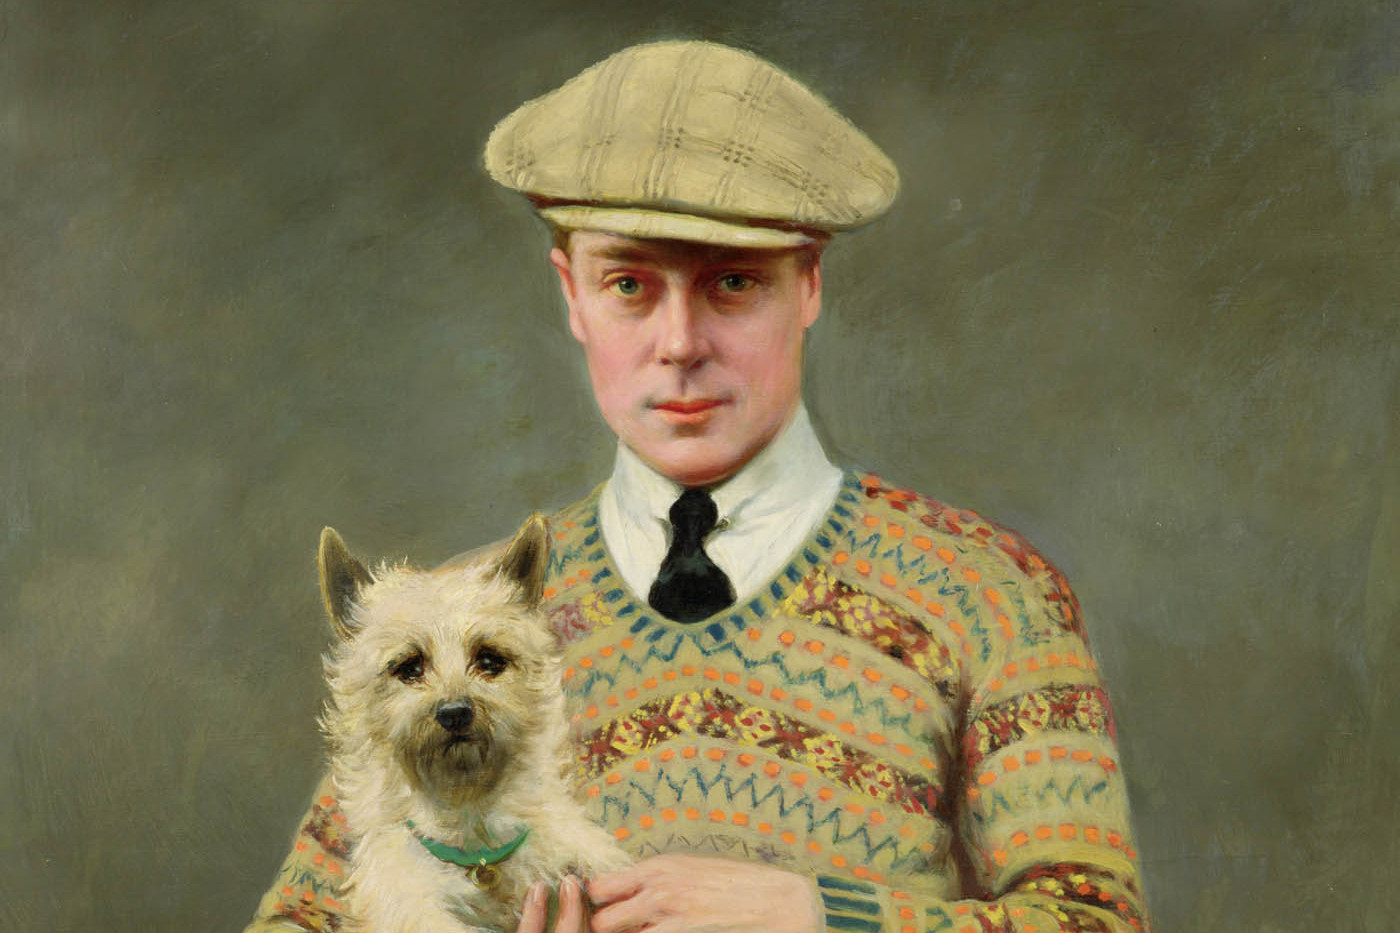 HRH David the Prince of Wales, 1925